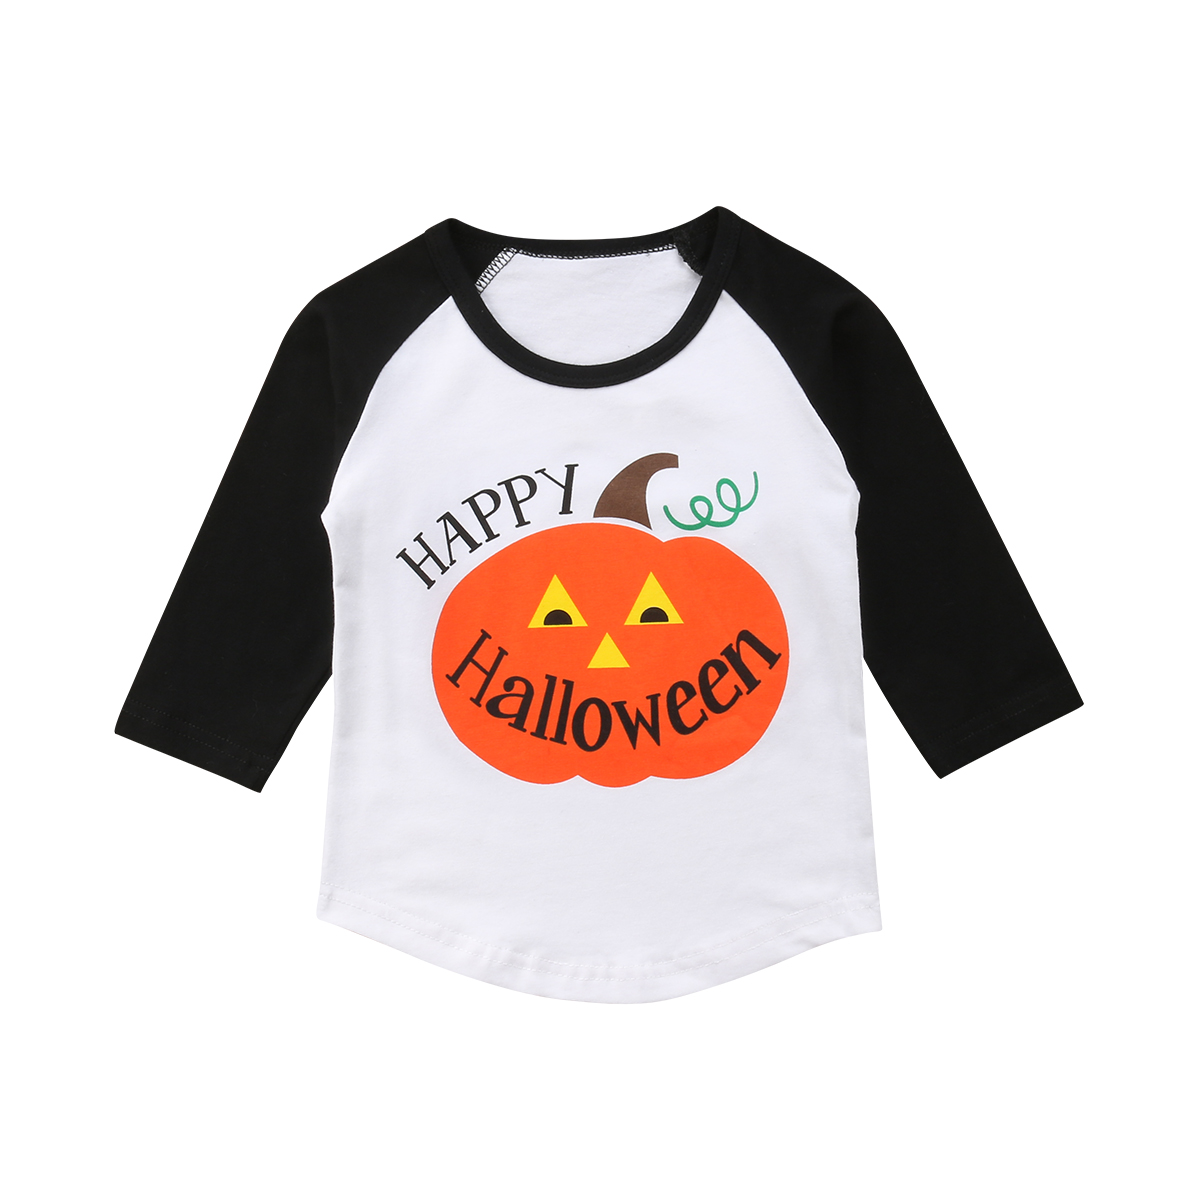 2059acffafcb38 Halloween Kids Baby Boys Cartoon Pumpkin Tops Long Pants Leggings Outfit  Clothes Outfits   Sets